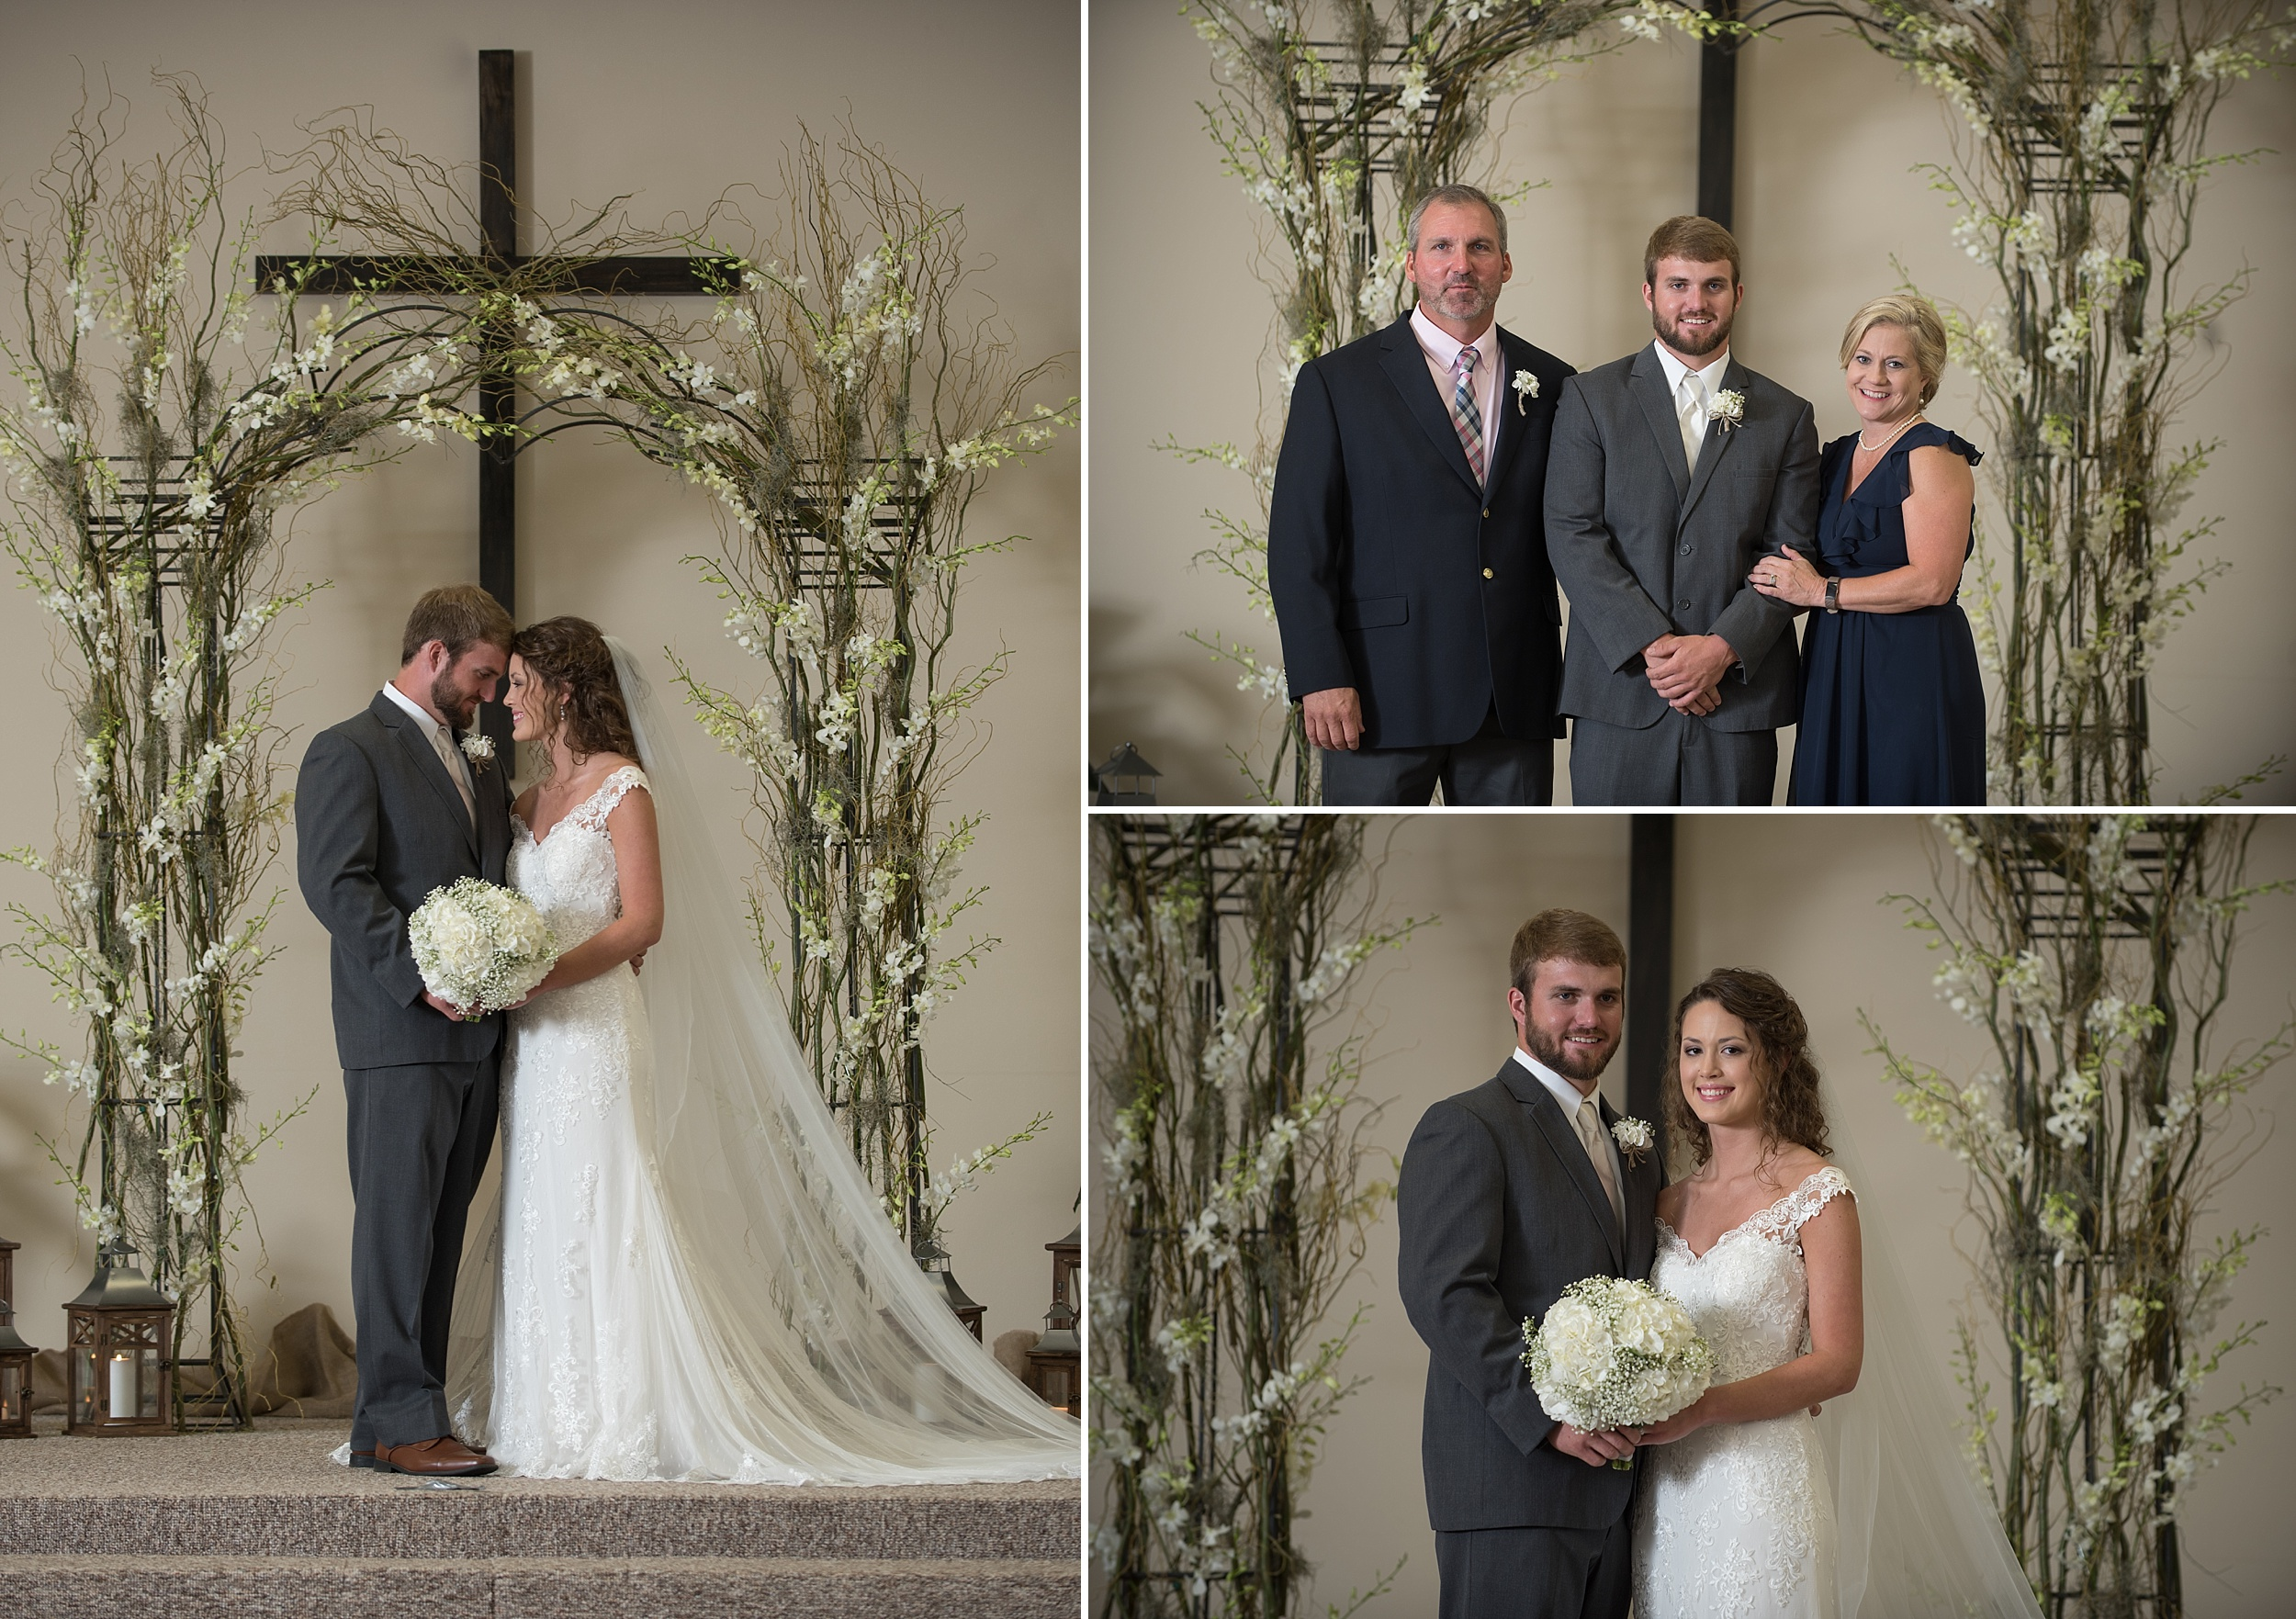 wooden cross and a floral arch frame the newly married couple at the alter